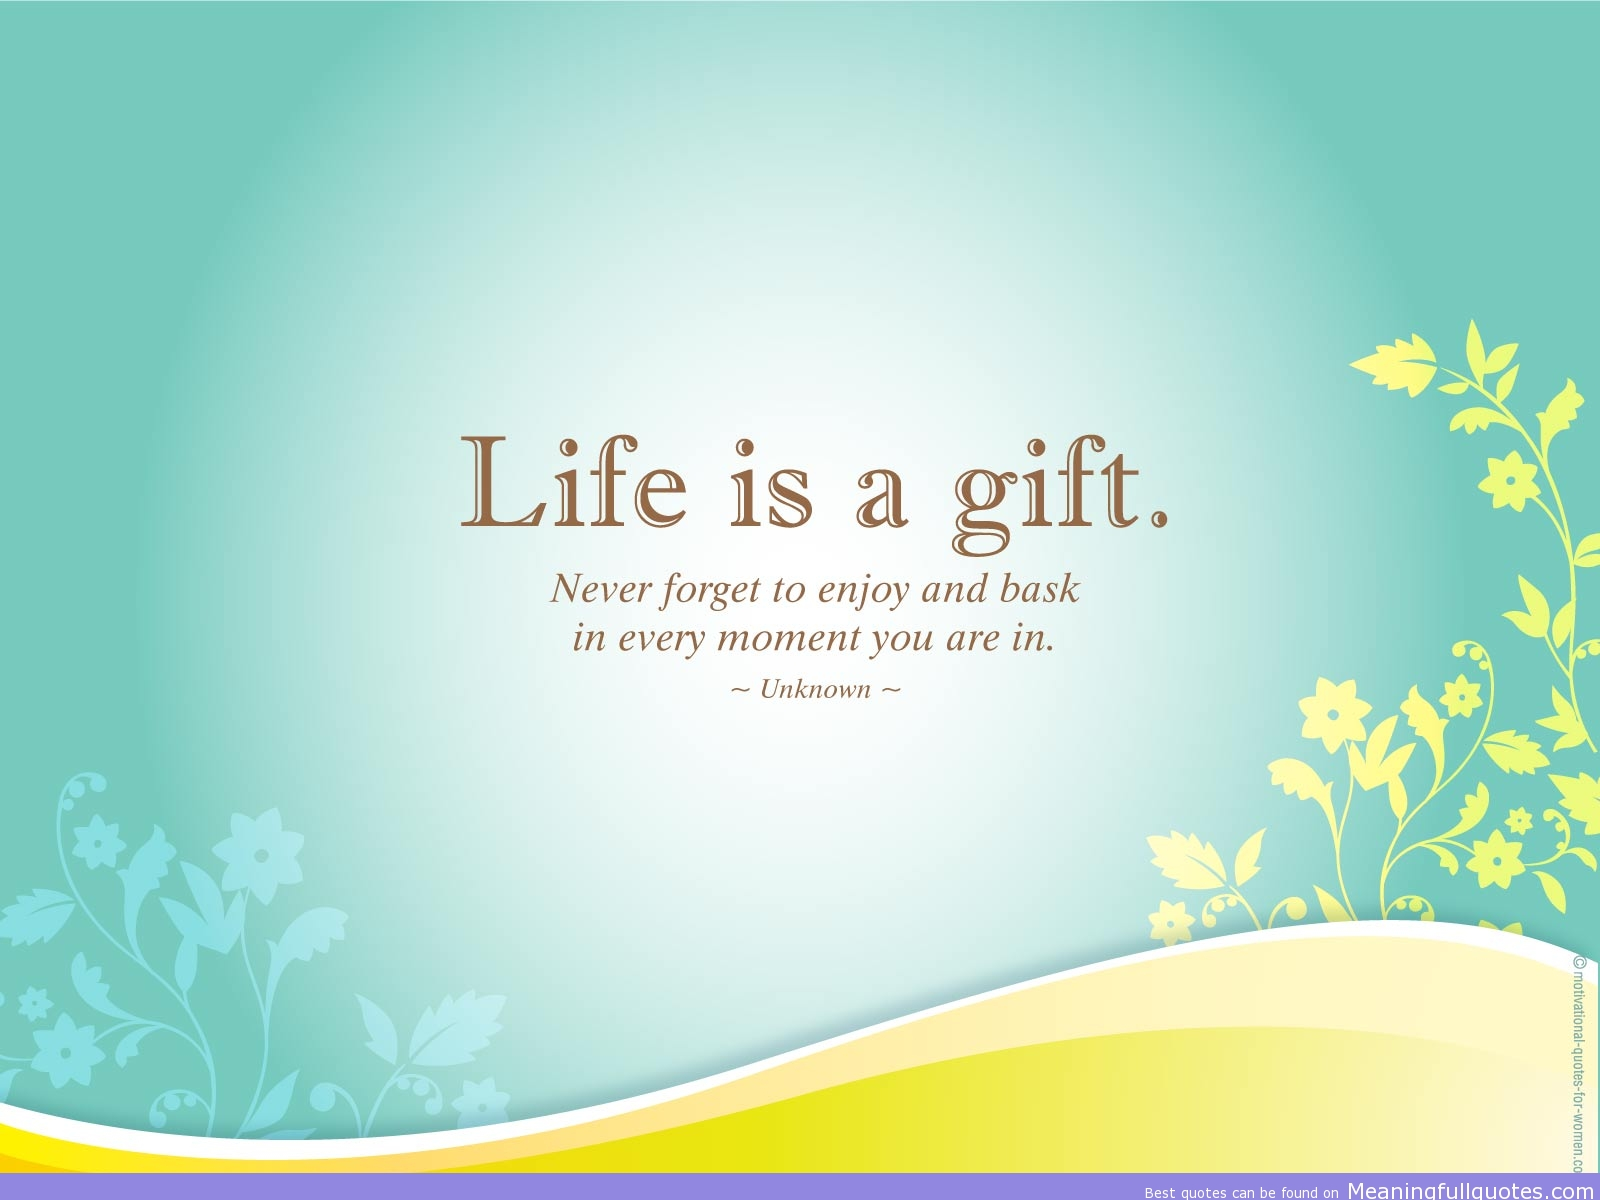 Love Quotes Life Wallpaper : Life Quote Wallpapers, Pictures, Images